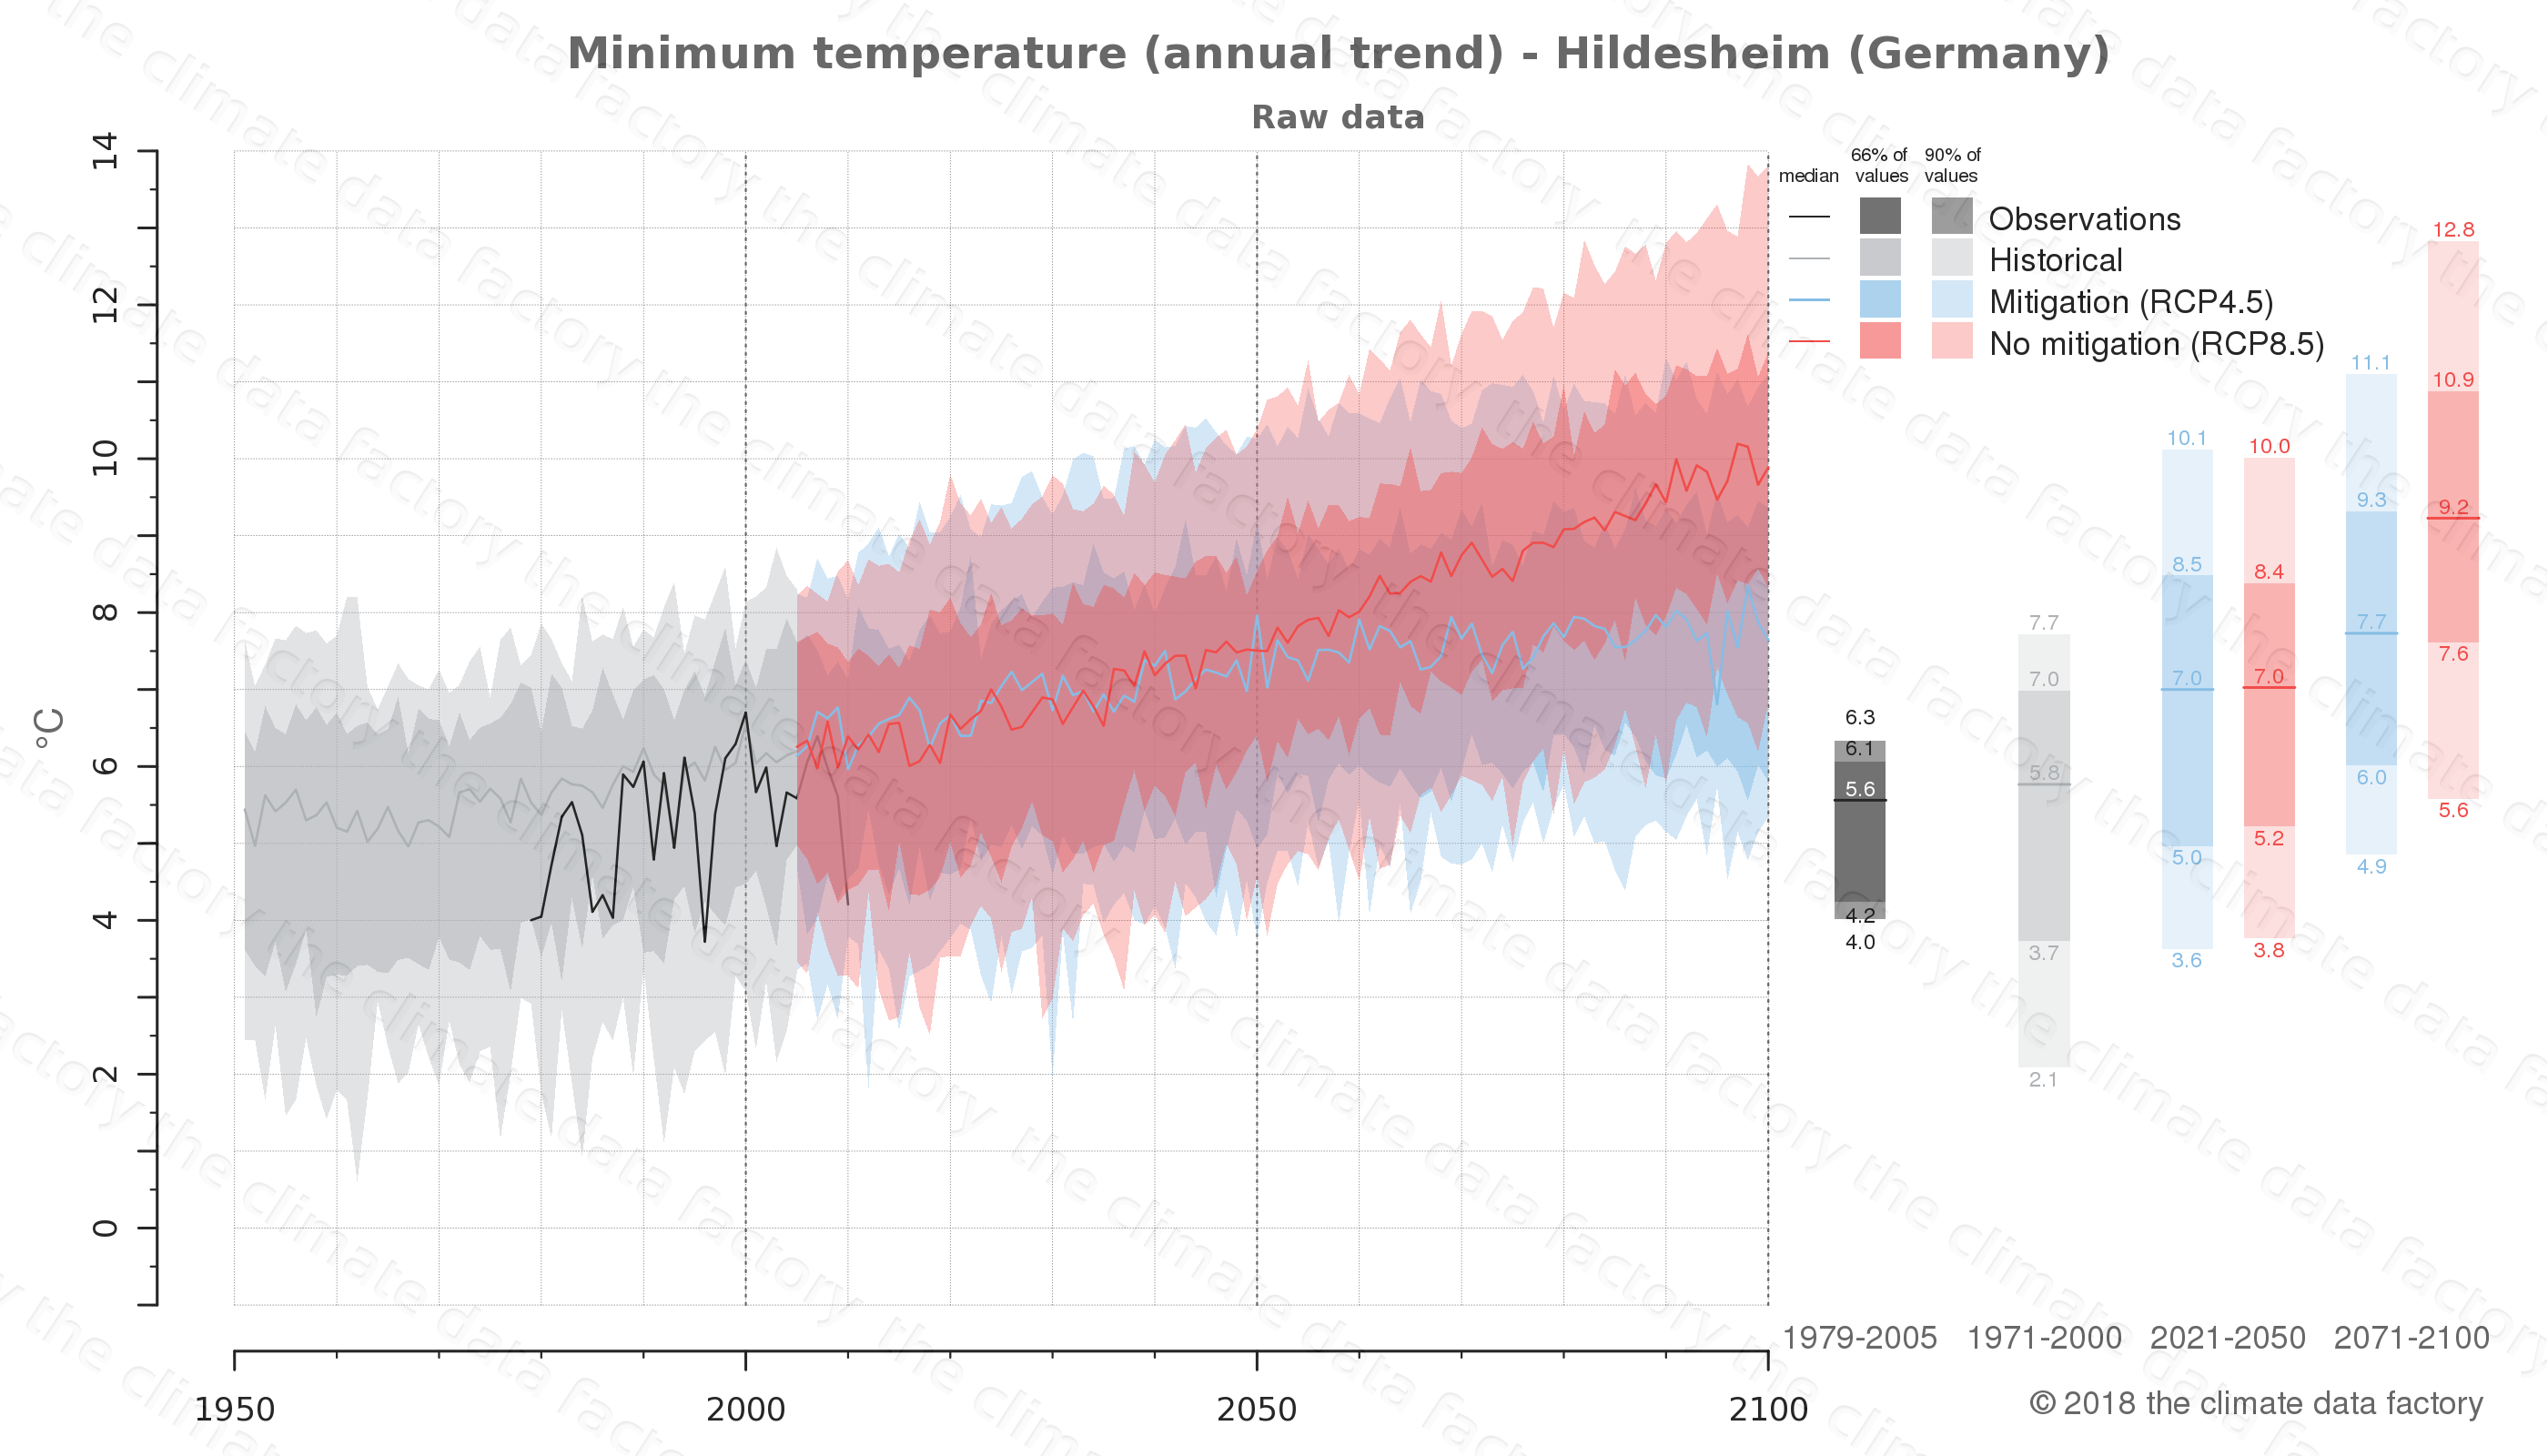 climate change data policy adaptation climate graph city data minimum-temperature hildesheim germany